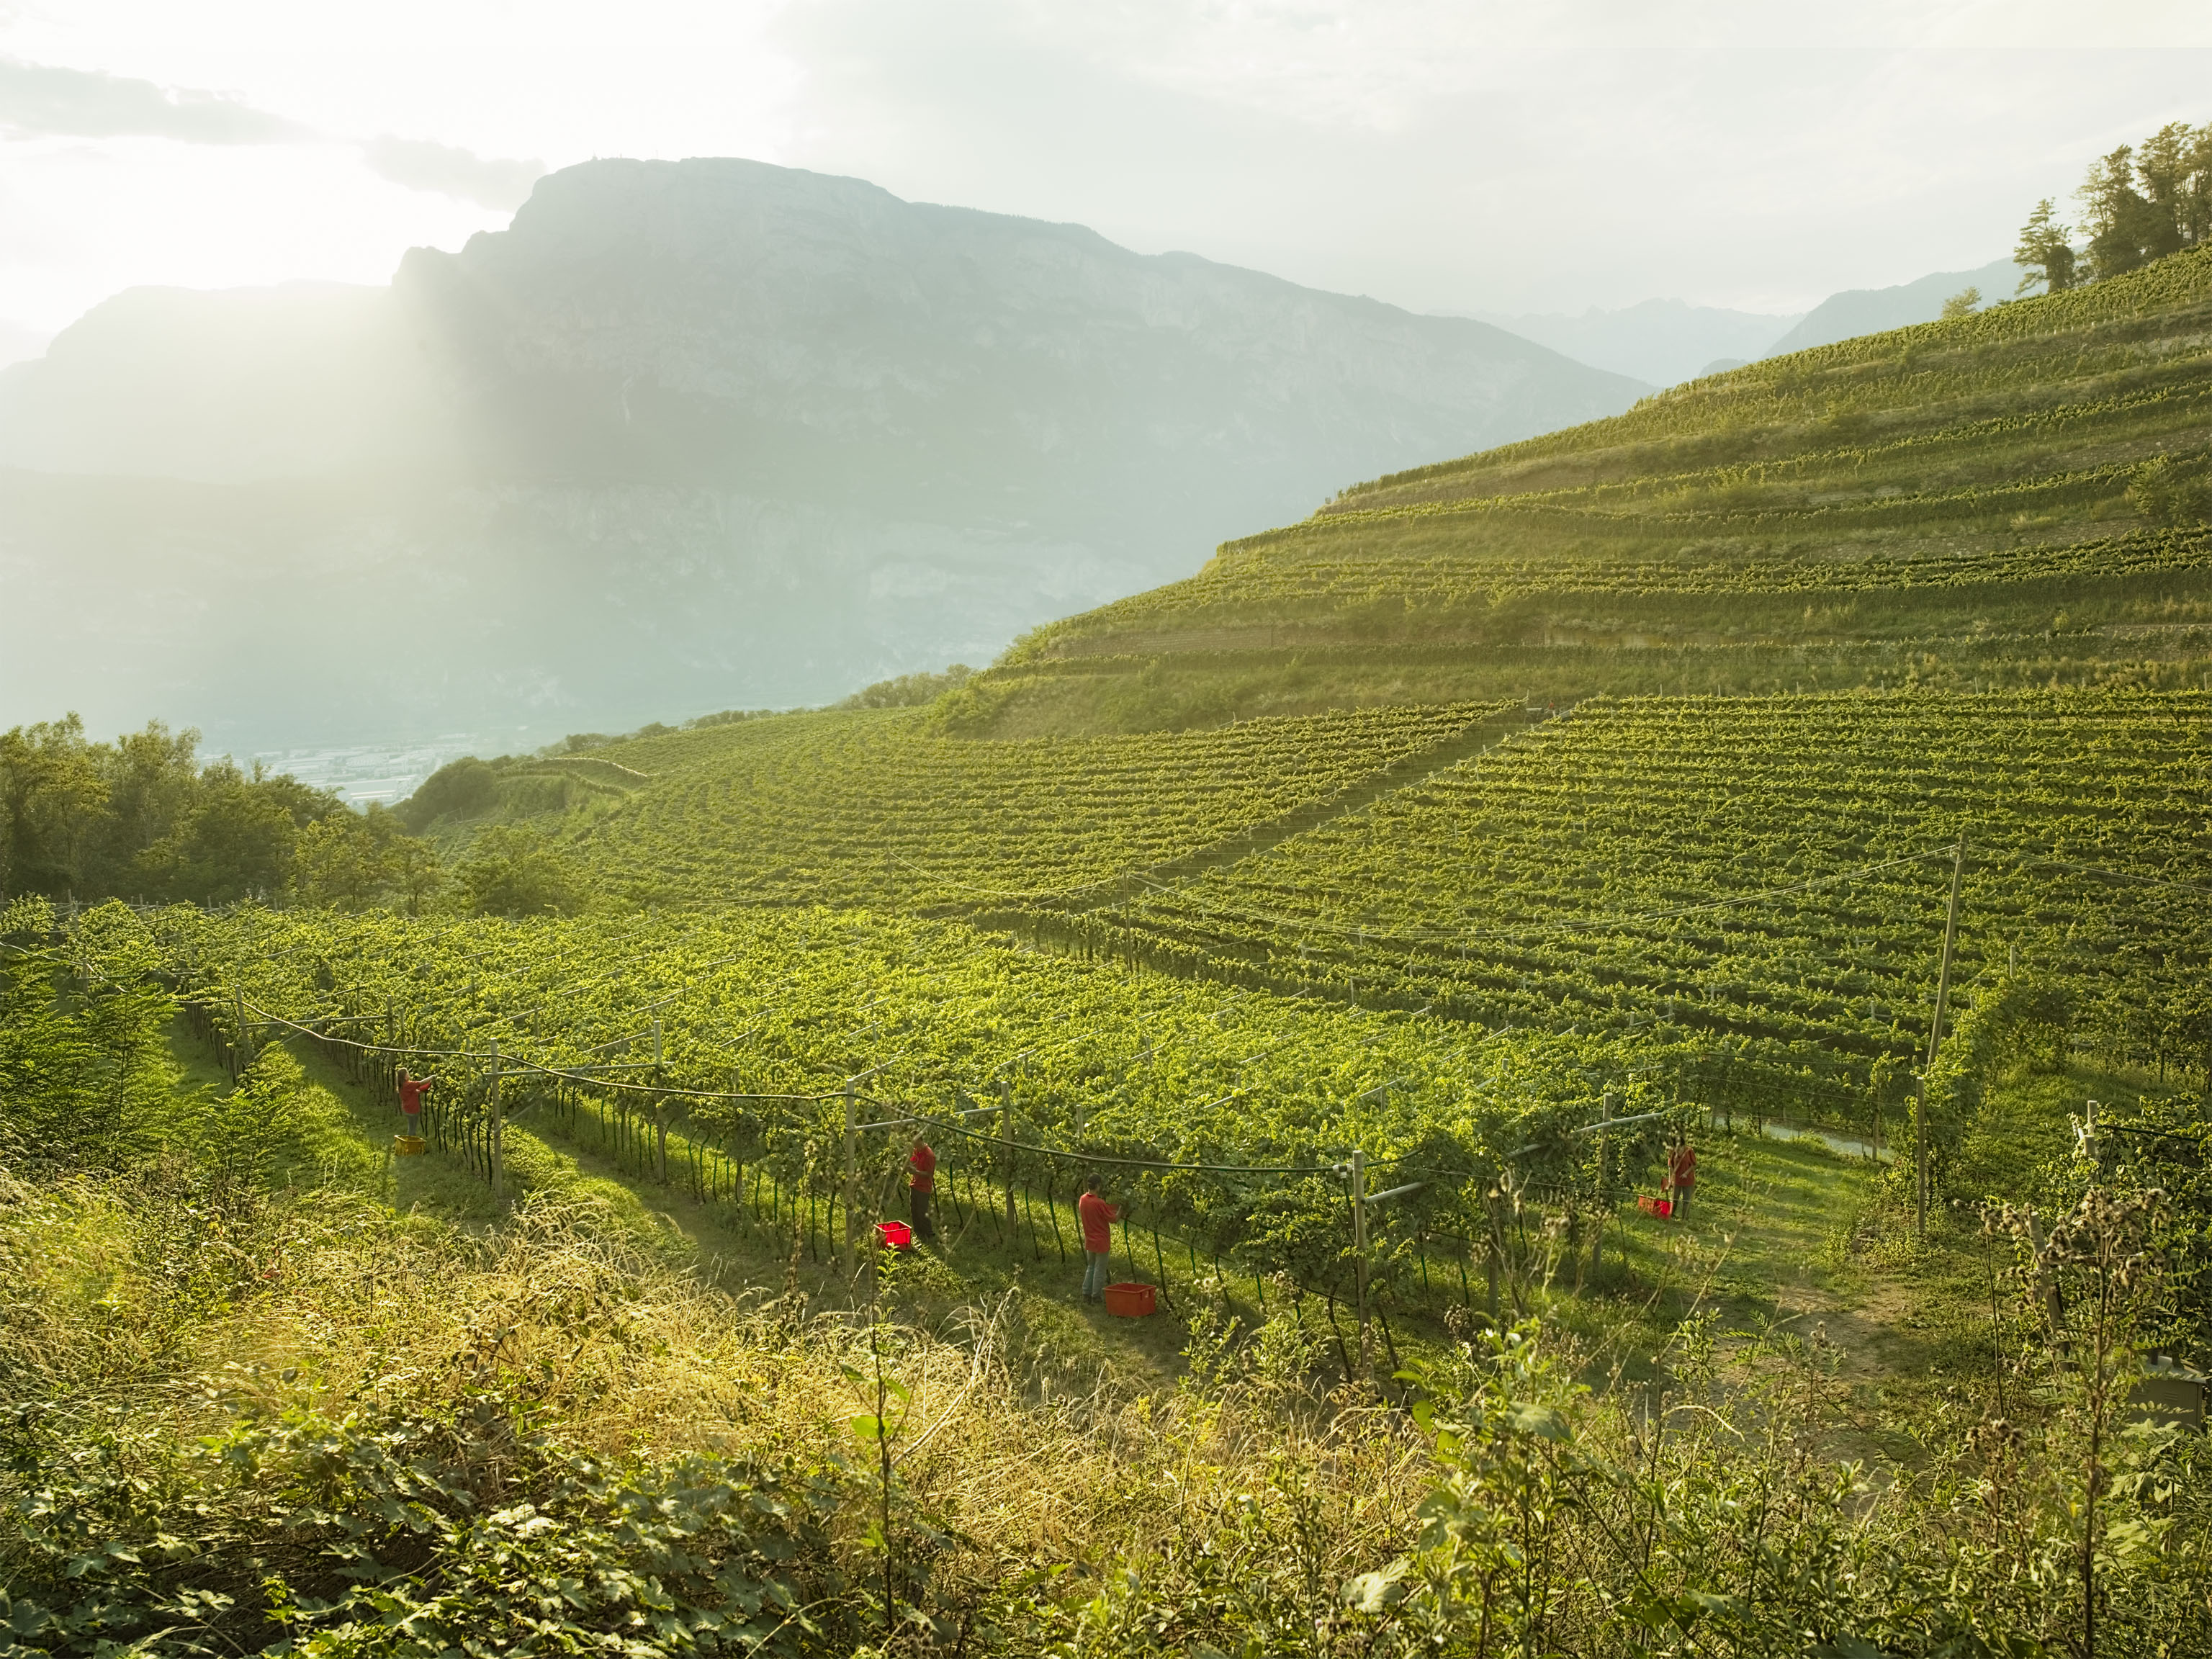 Ferrari vineyards in Trento.